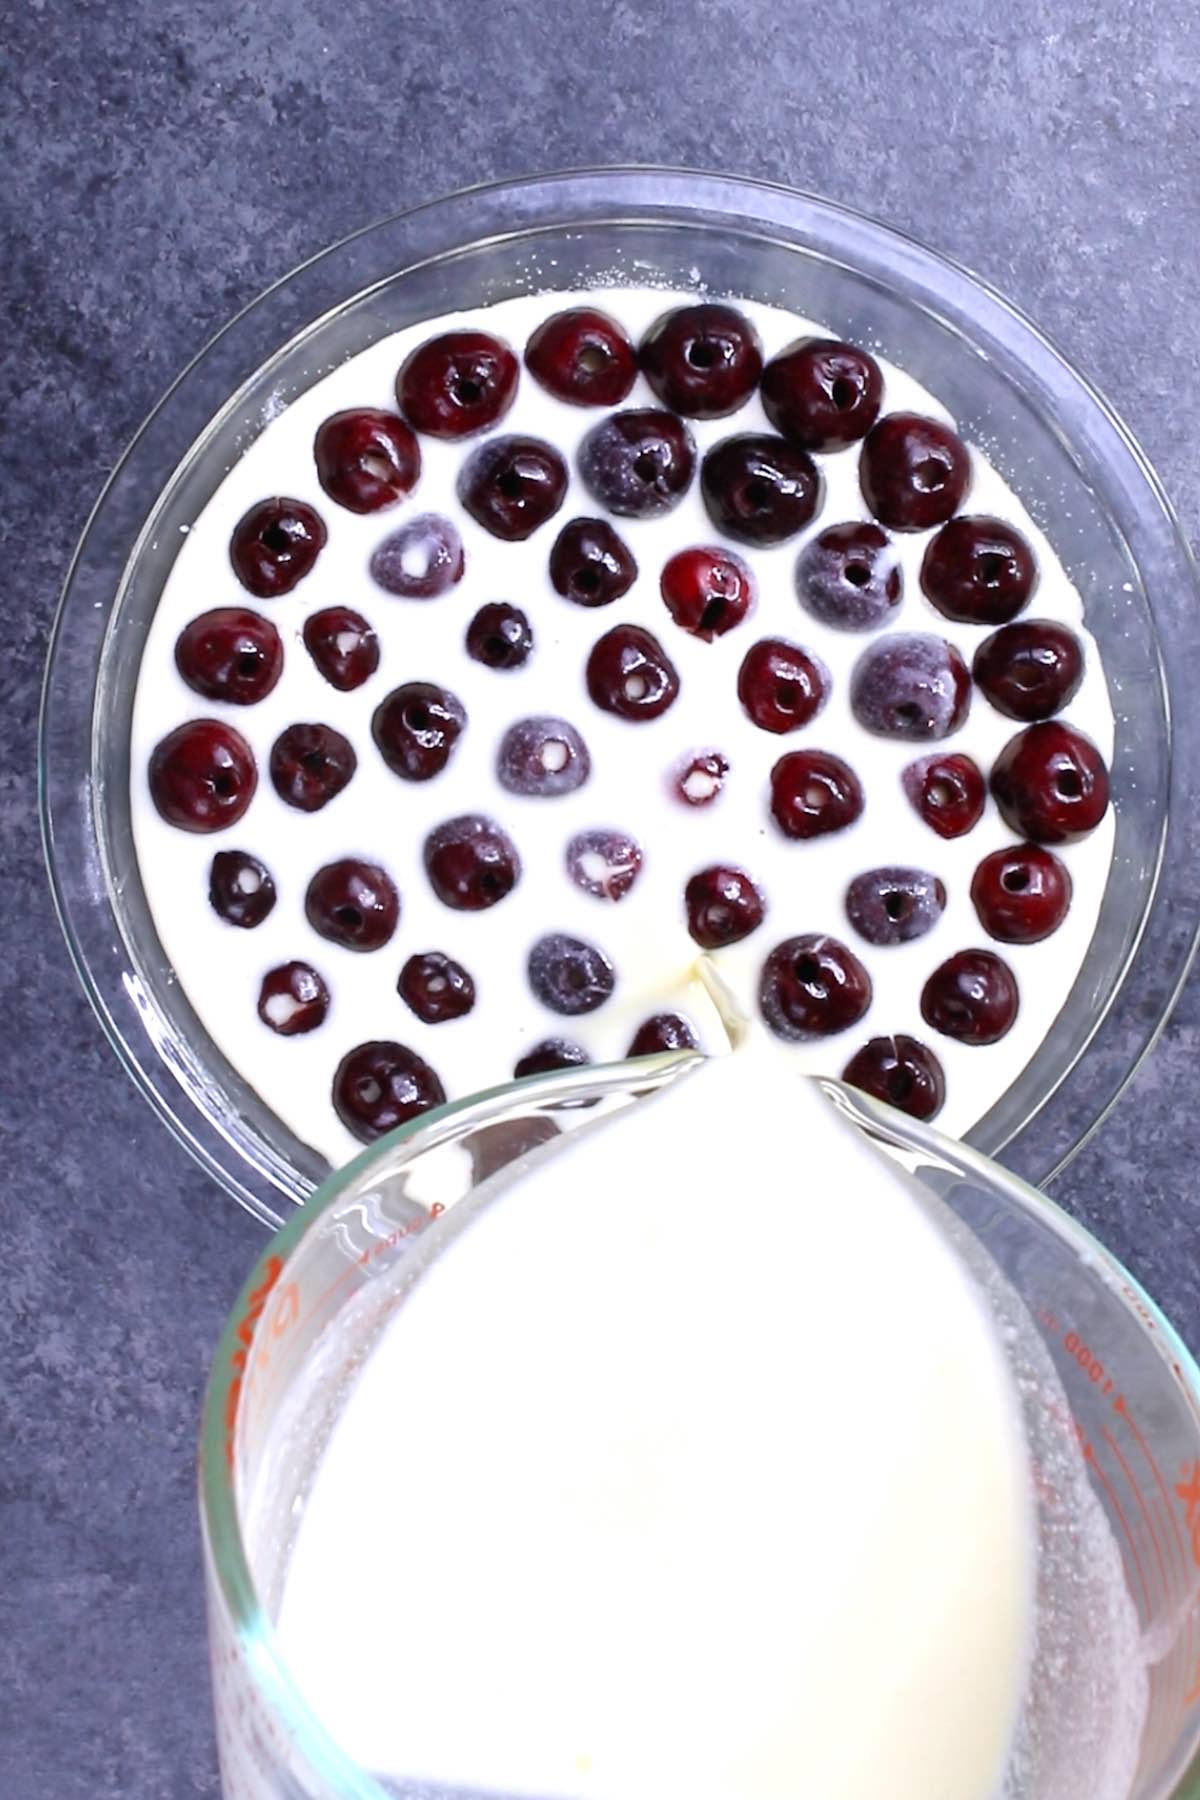 Overhead view of pouring batter on top of cherries when making a clafoutis